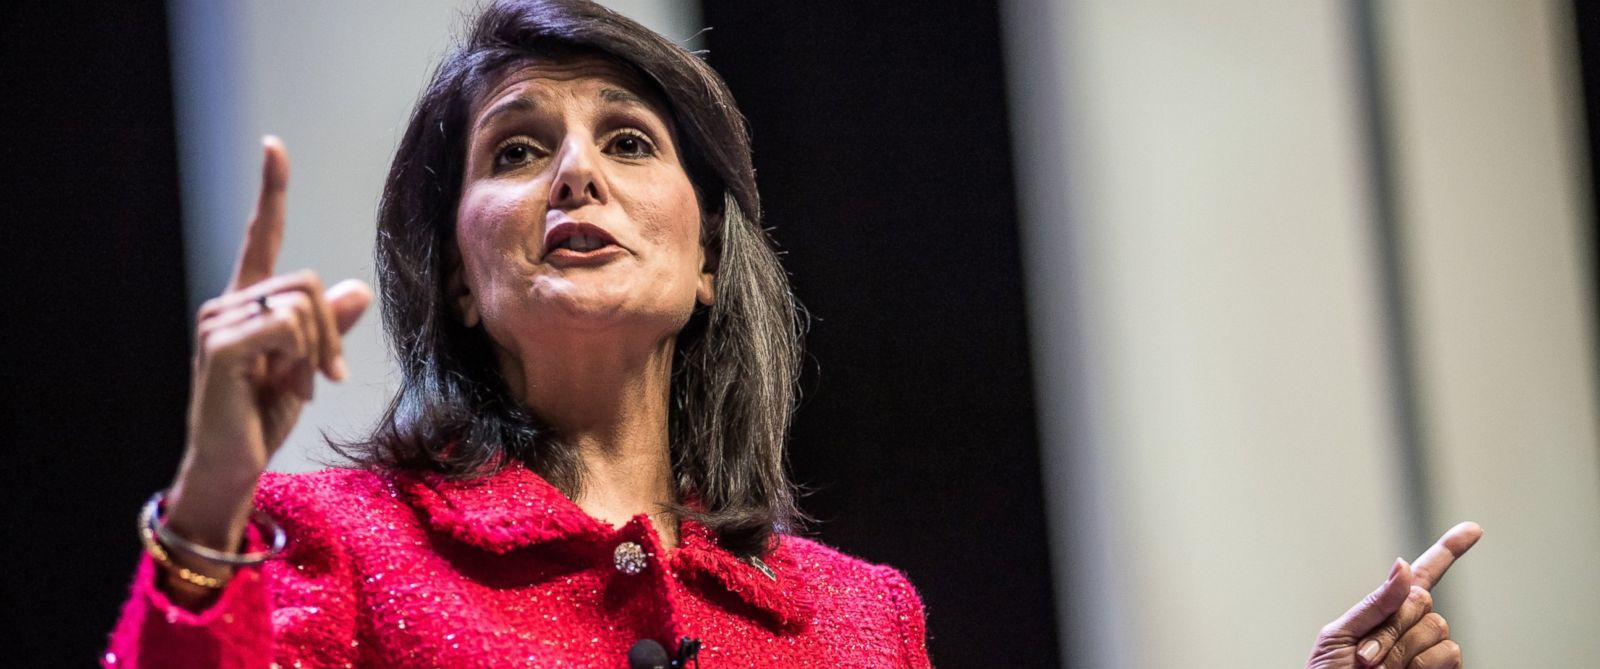 PHOTO: South Carolina Governor and moderator of the Heritage Action Presidential Candidate Forum Nikki Haley speaks to the crowd, Sept. 18, 2015, in Greenville, South Carolina.